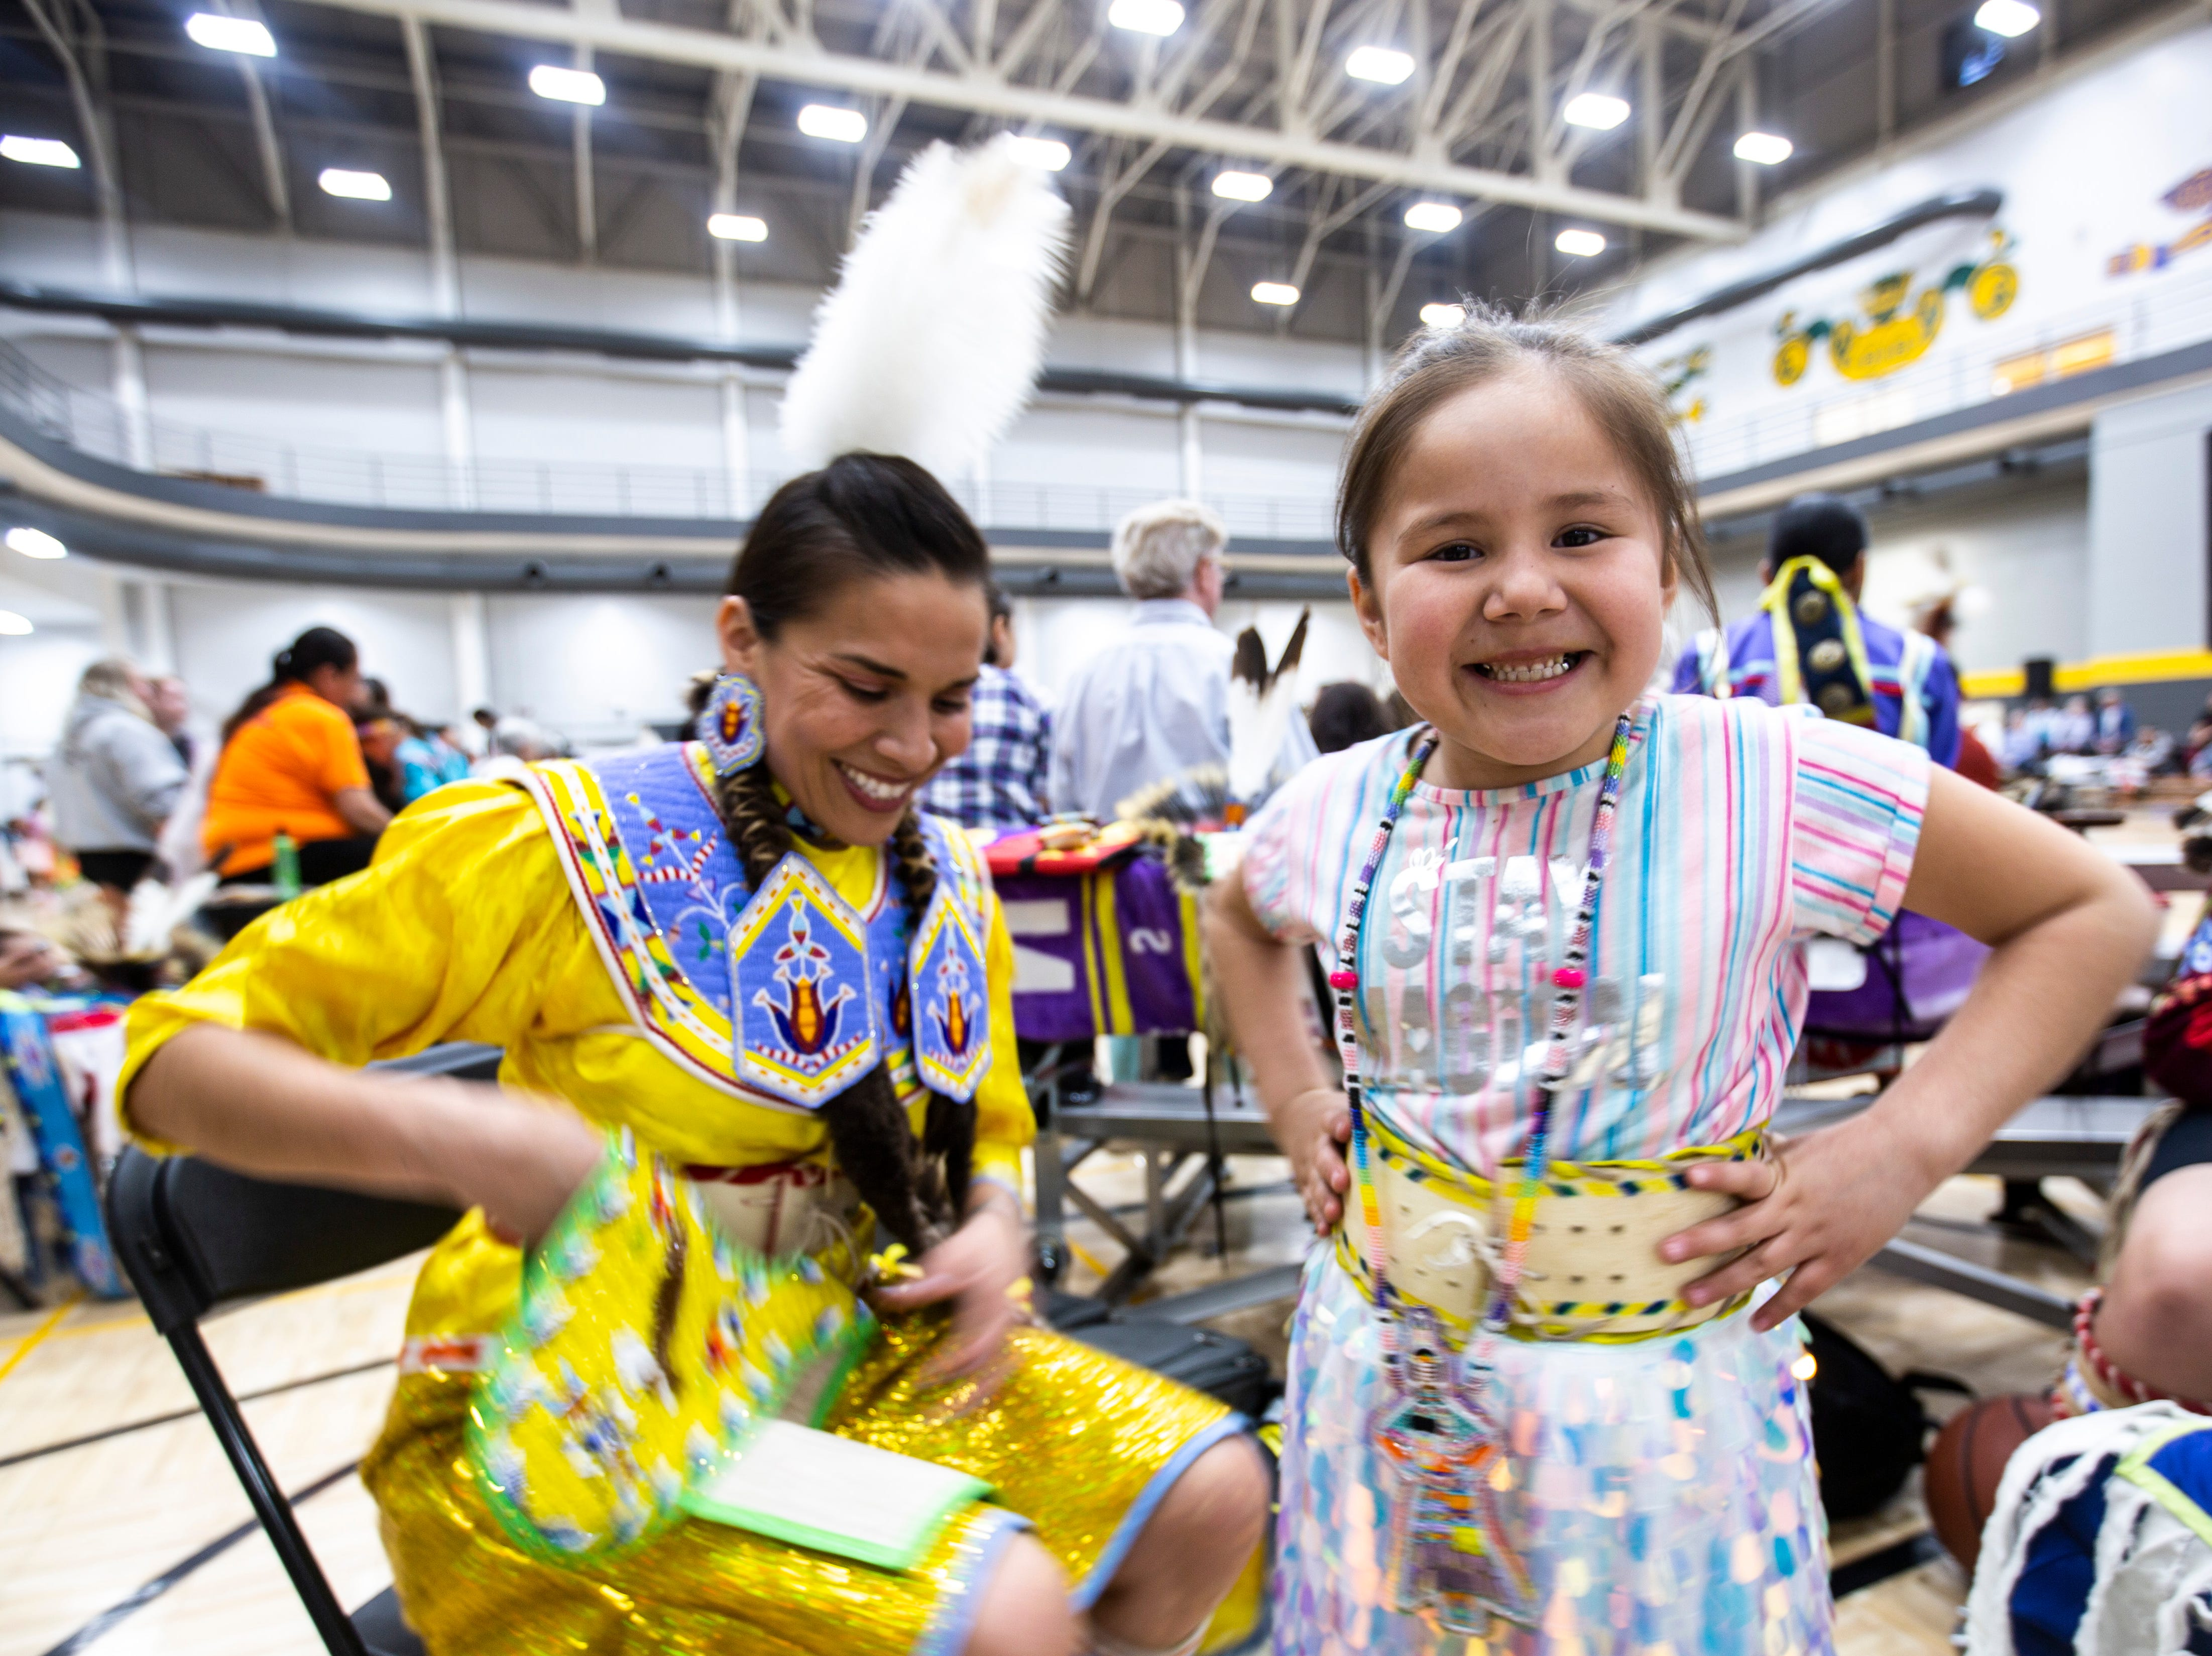 Tess Lasley, 6, smiles before while her mother, Nahmi, of the Comanche and Dakota tribes in Tama, Iowa, helps her get ready before a dance during the 25th annual University of Iowa powwow, Saturday, April 20, 2019, at the Field House on the University of Iowa campus in Iowa City, Iowa. The family has been attending the powwow every year since is first began.